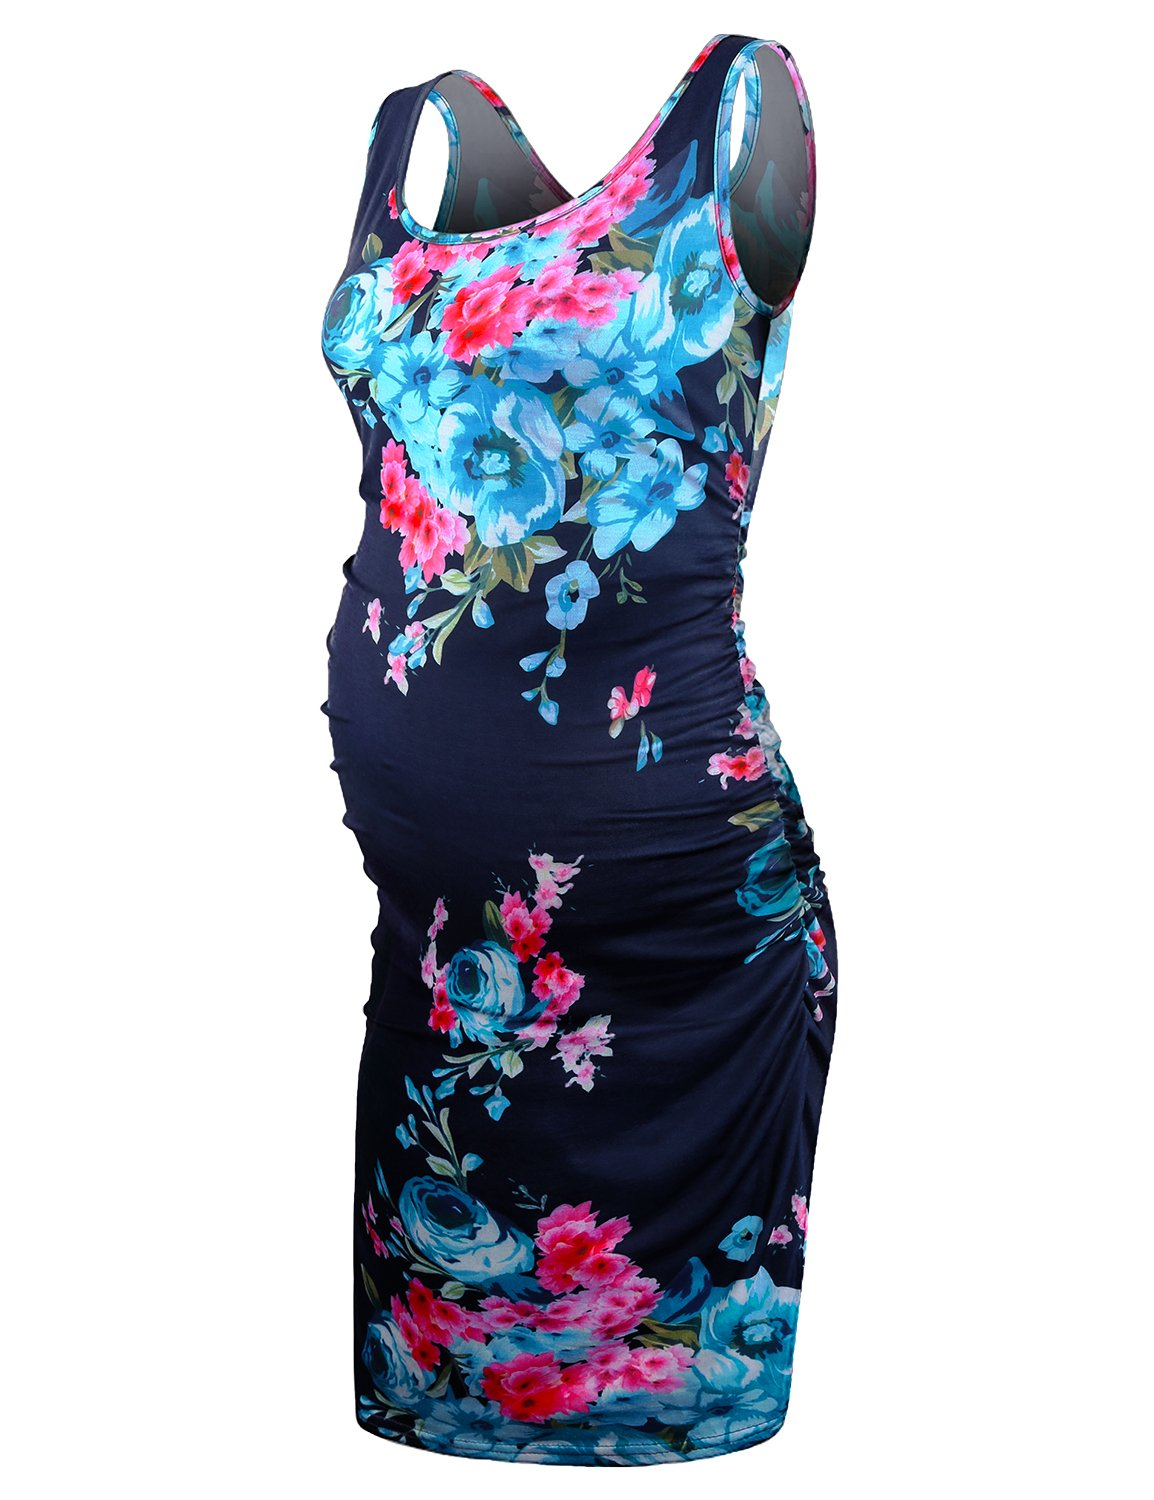 JOYMOM Meternity Sleeveless Dresses, Knee Length Summer Dress for Women Floral Pattern Side Ruched Tank Tops Loose Fit Clothes Under Any Outfits Blue Red Flower X-Large